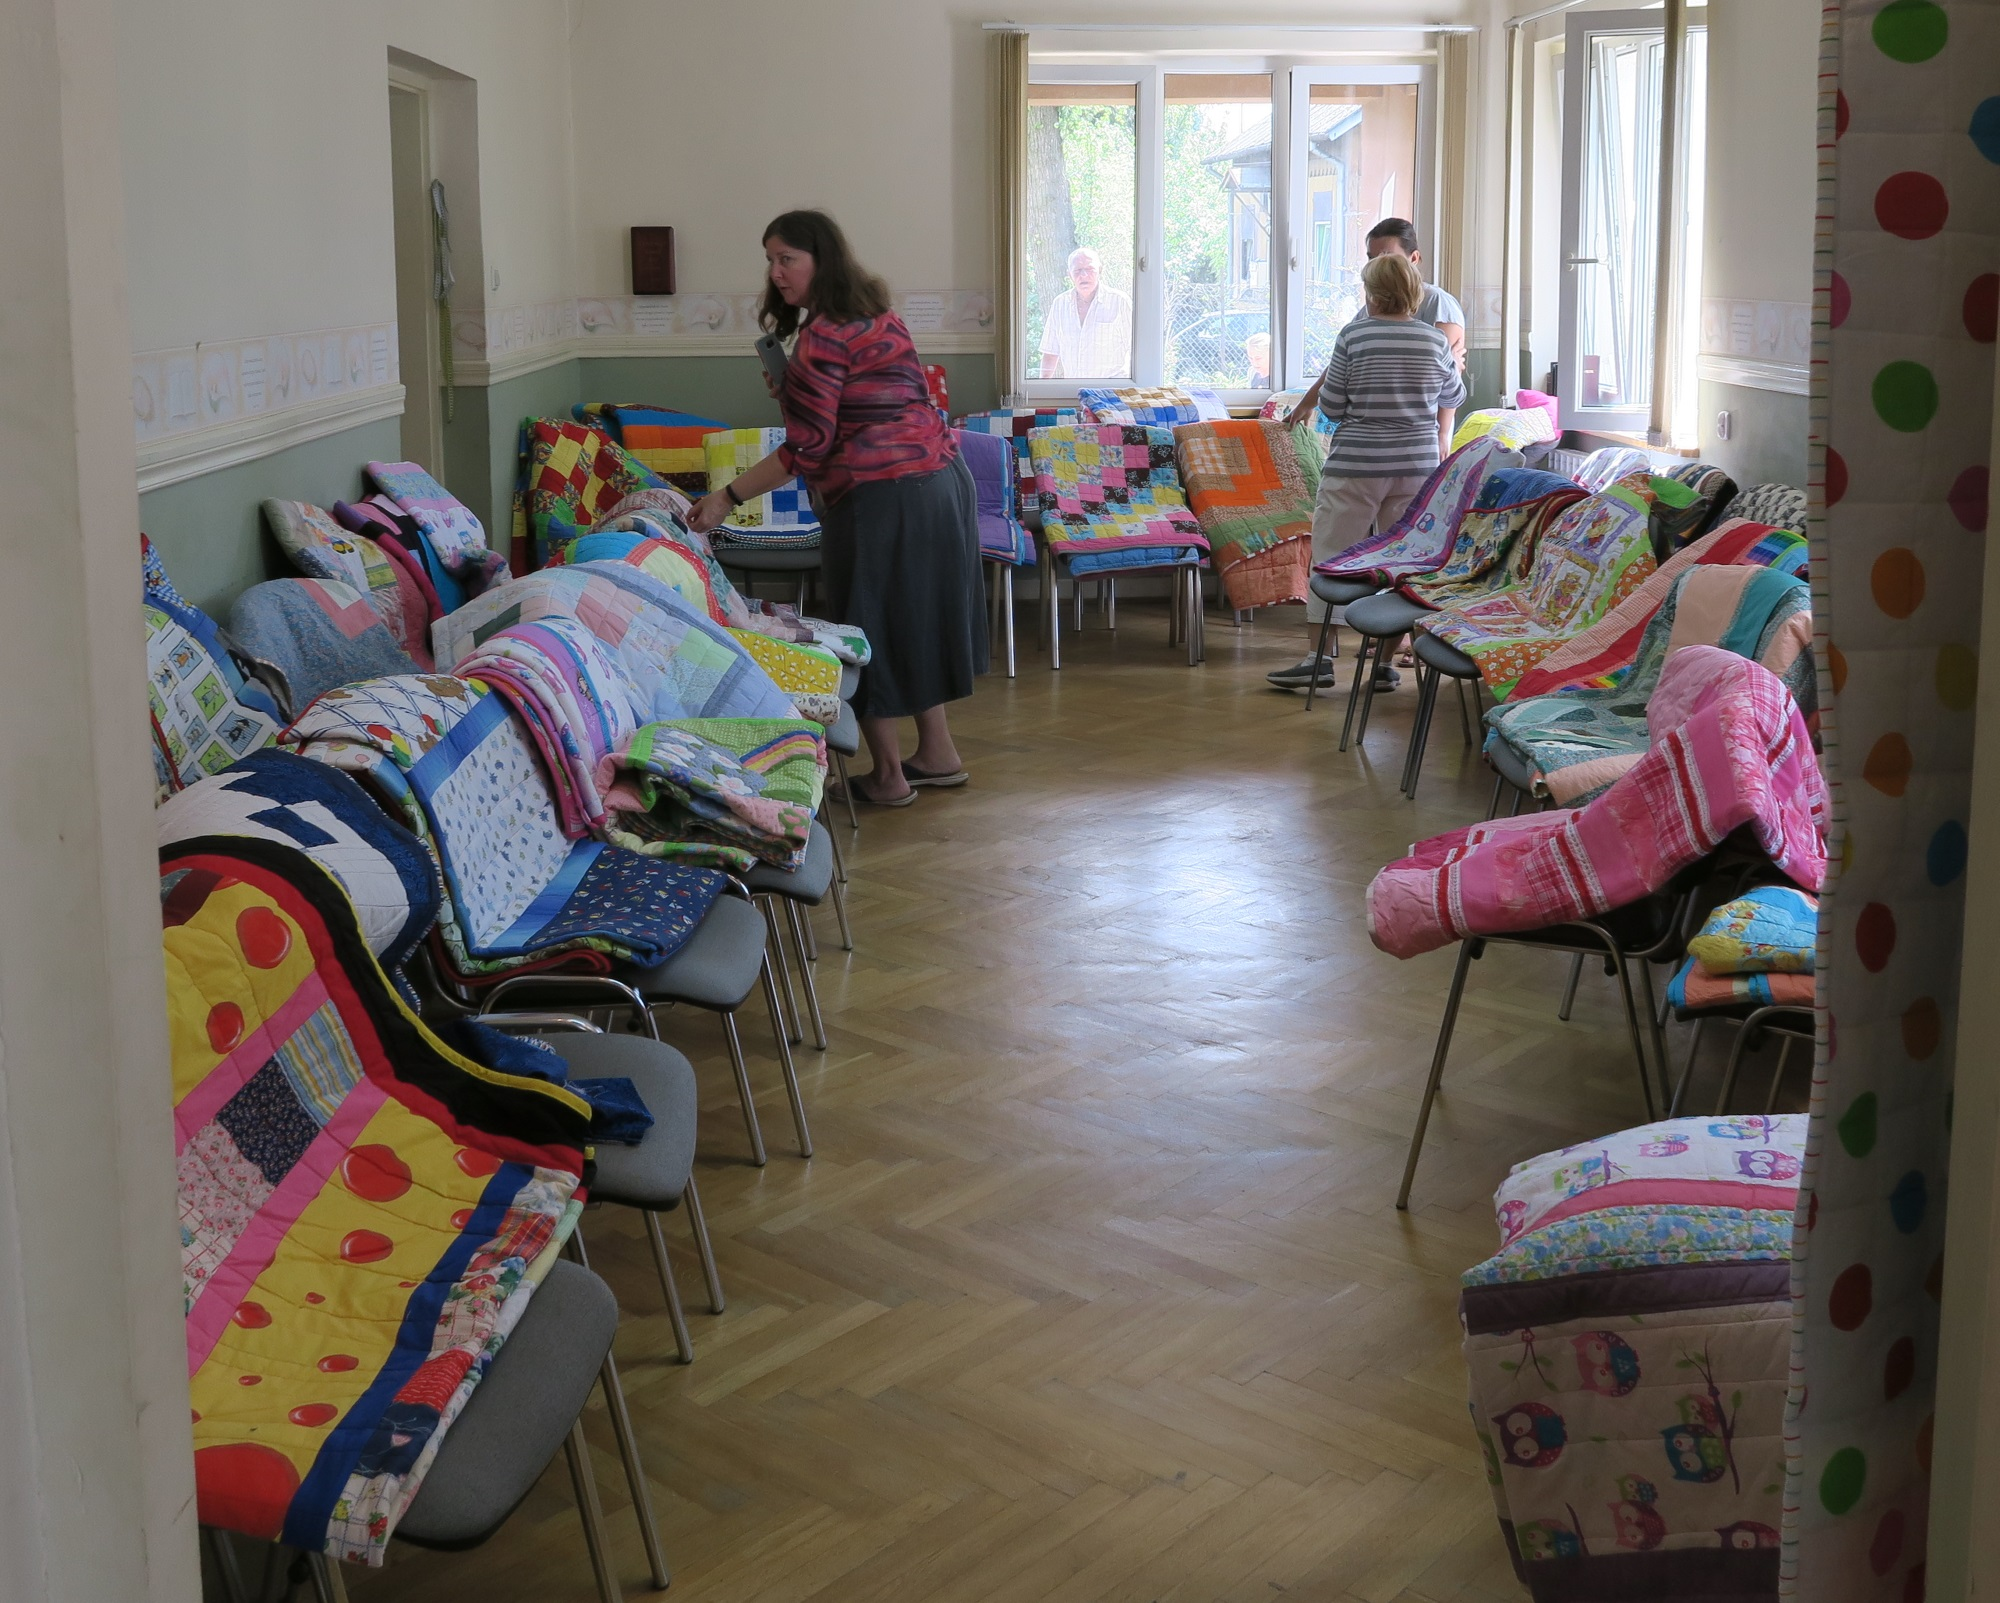 This picture was taken last August when we had a big give away of charity quilts to people from Otwock, Poland.